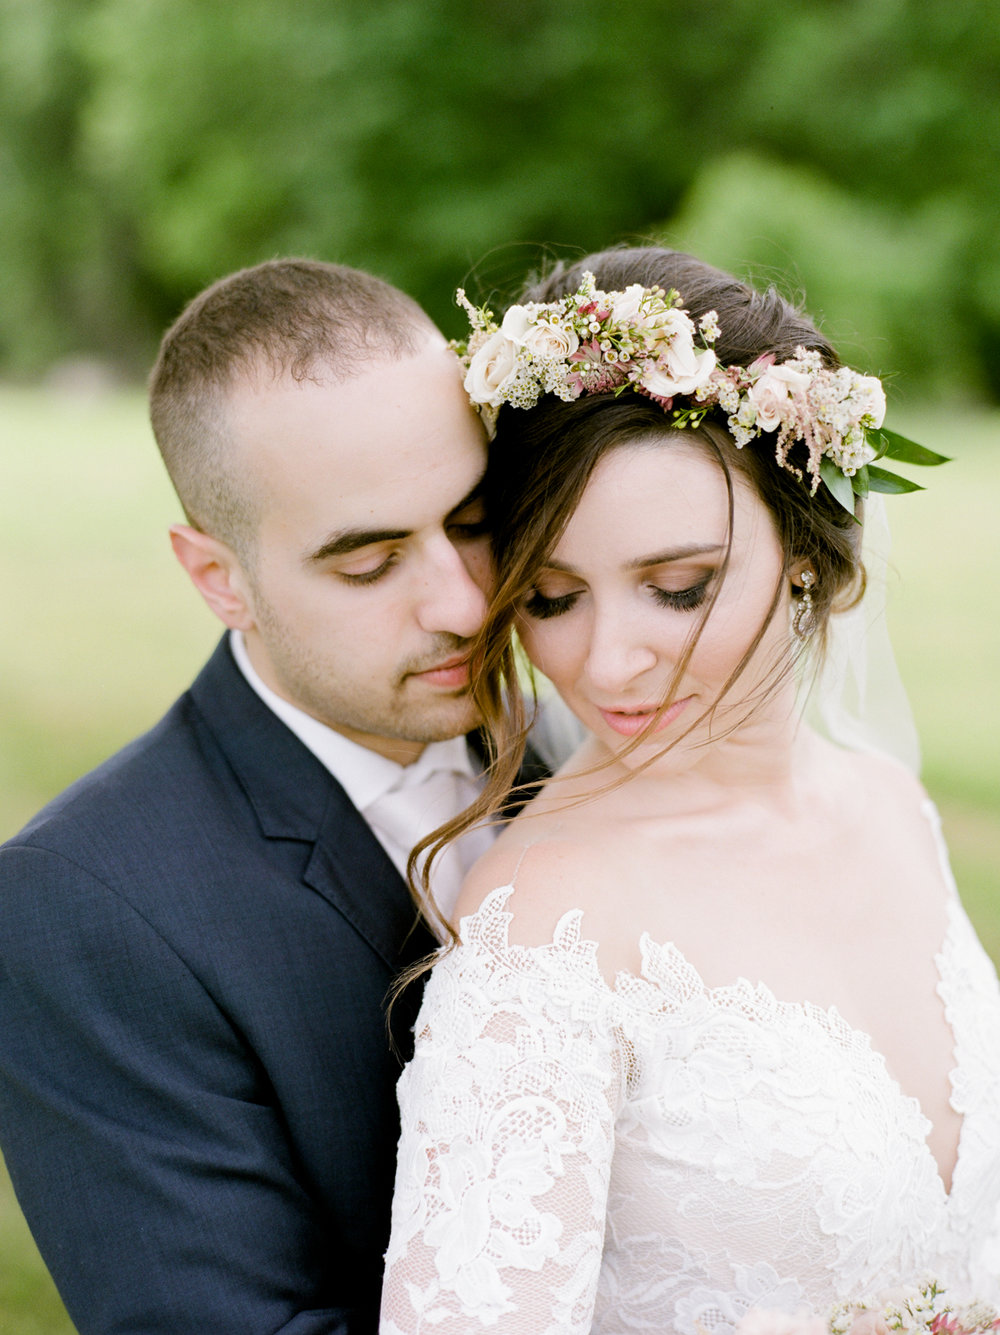 Fine art wedding photographer in Western MA